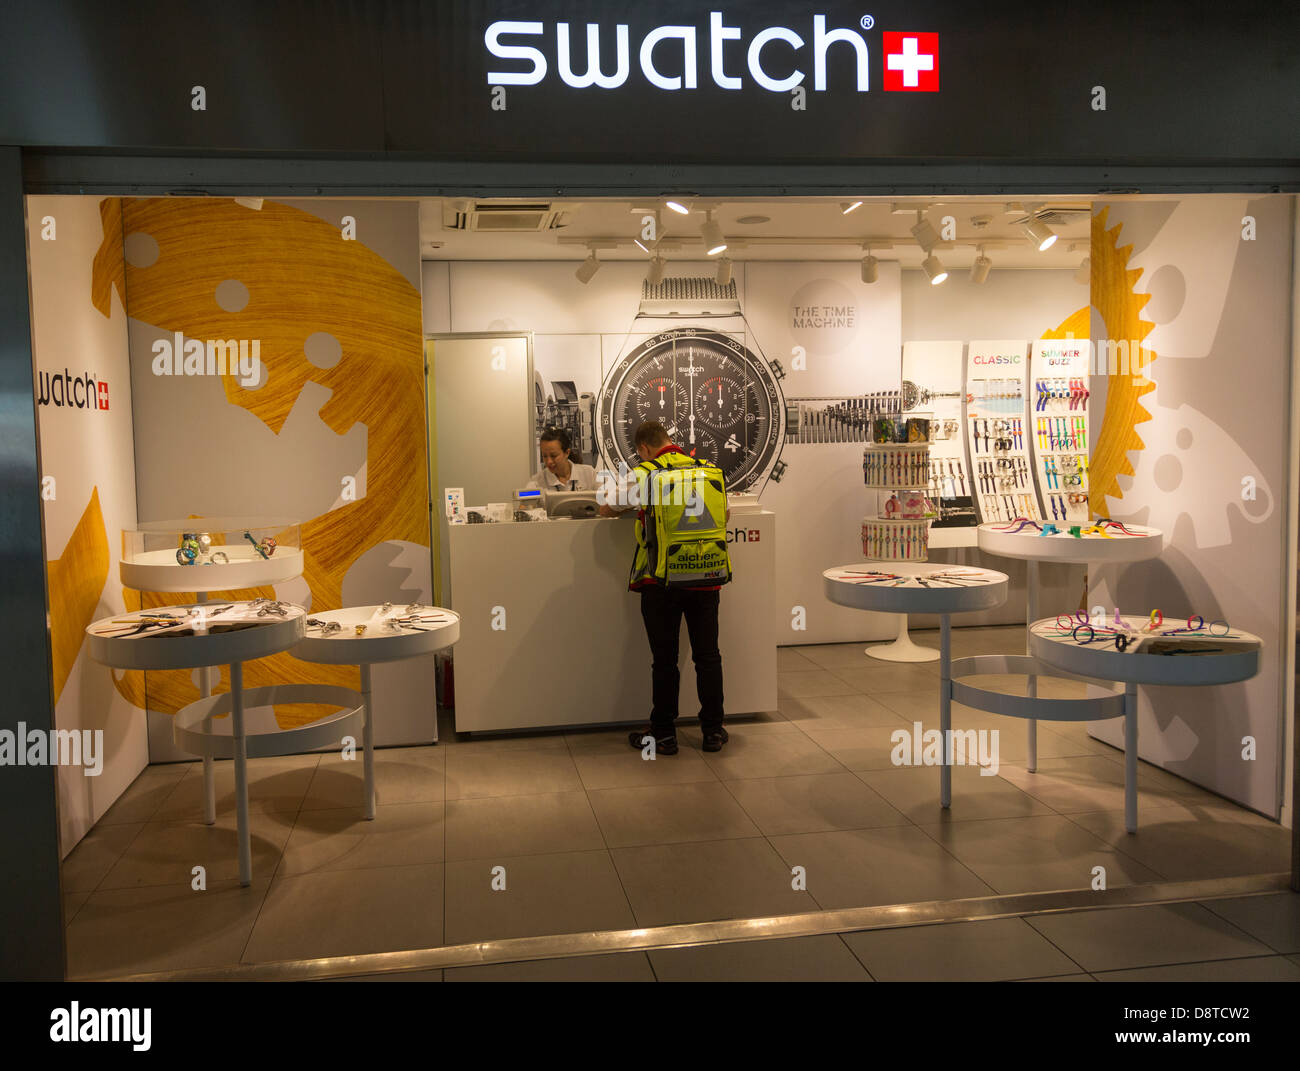 Swatch shop Fiumicino Airport, Rome, Italy - Stock Image